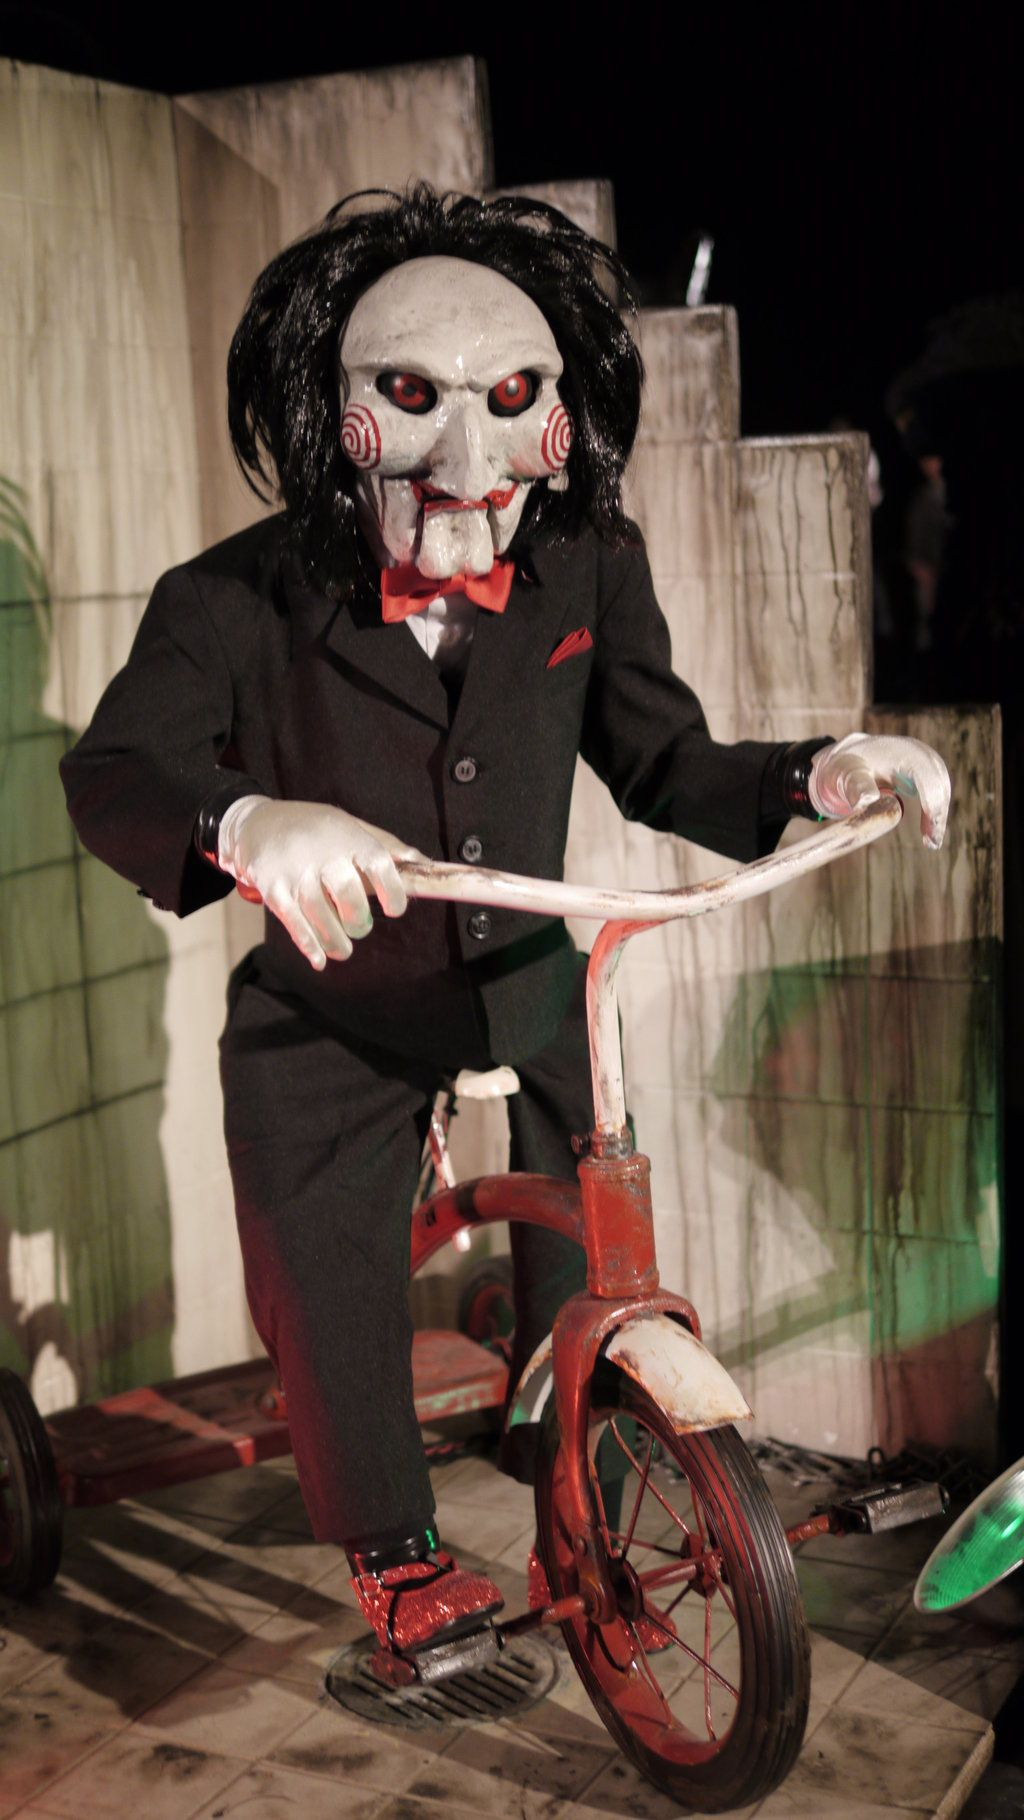 Billy The Puppet Saw Franchise Kick Him Off His Bike And Run